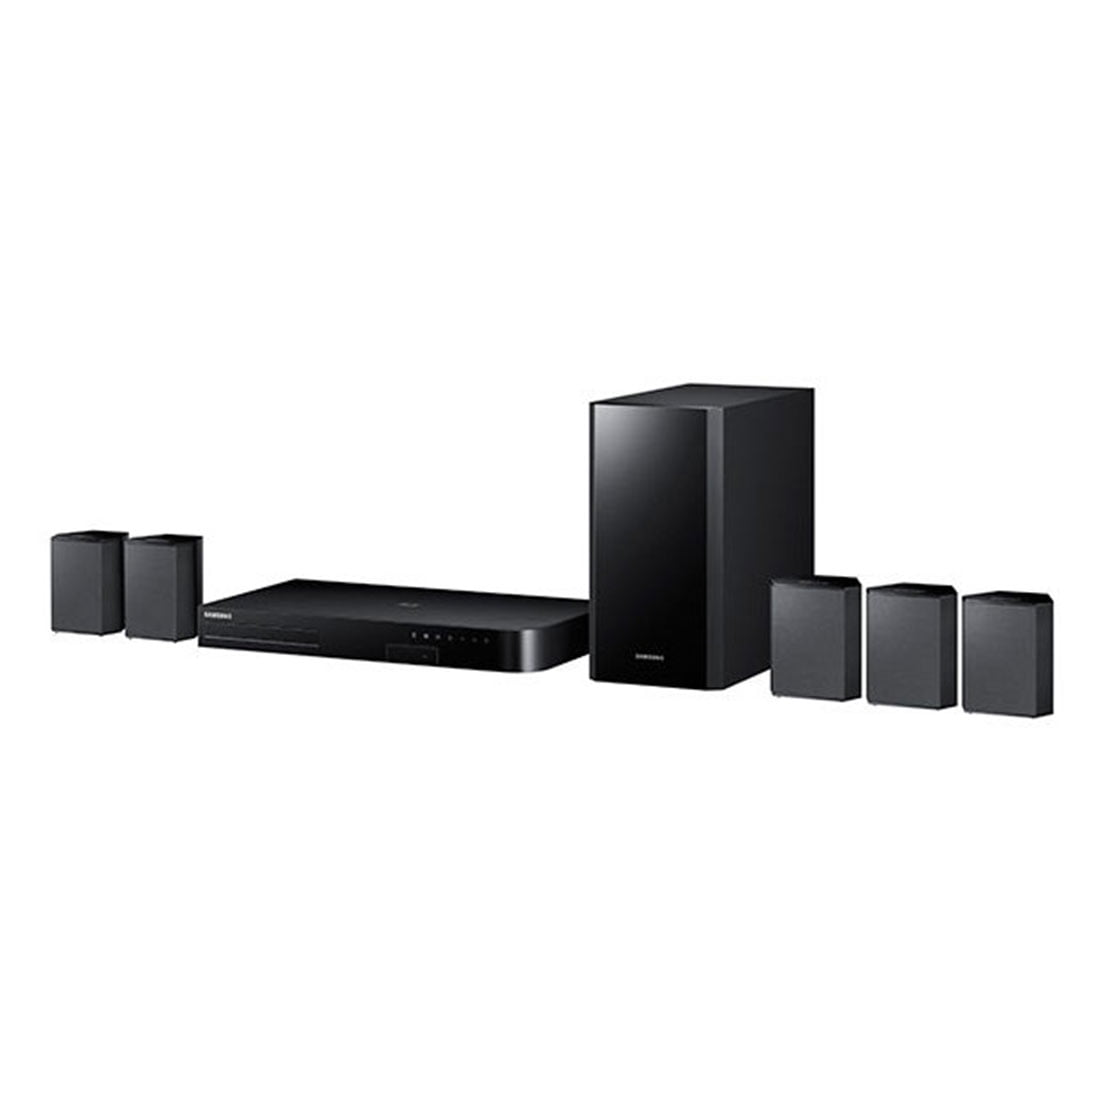 samsung ht j4500 home theater system. Black Bedroom Furniture Sets. Home Design Ideas